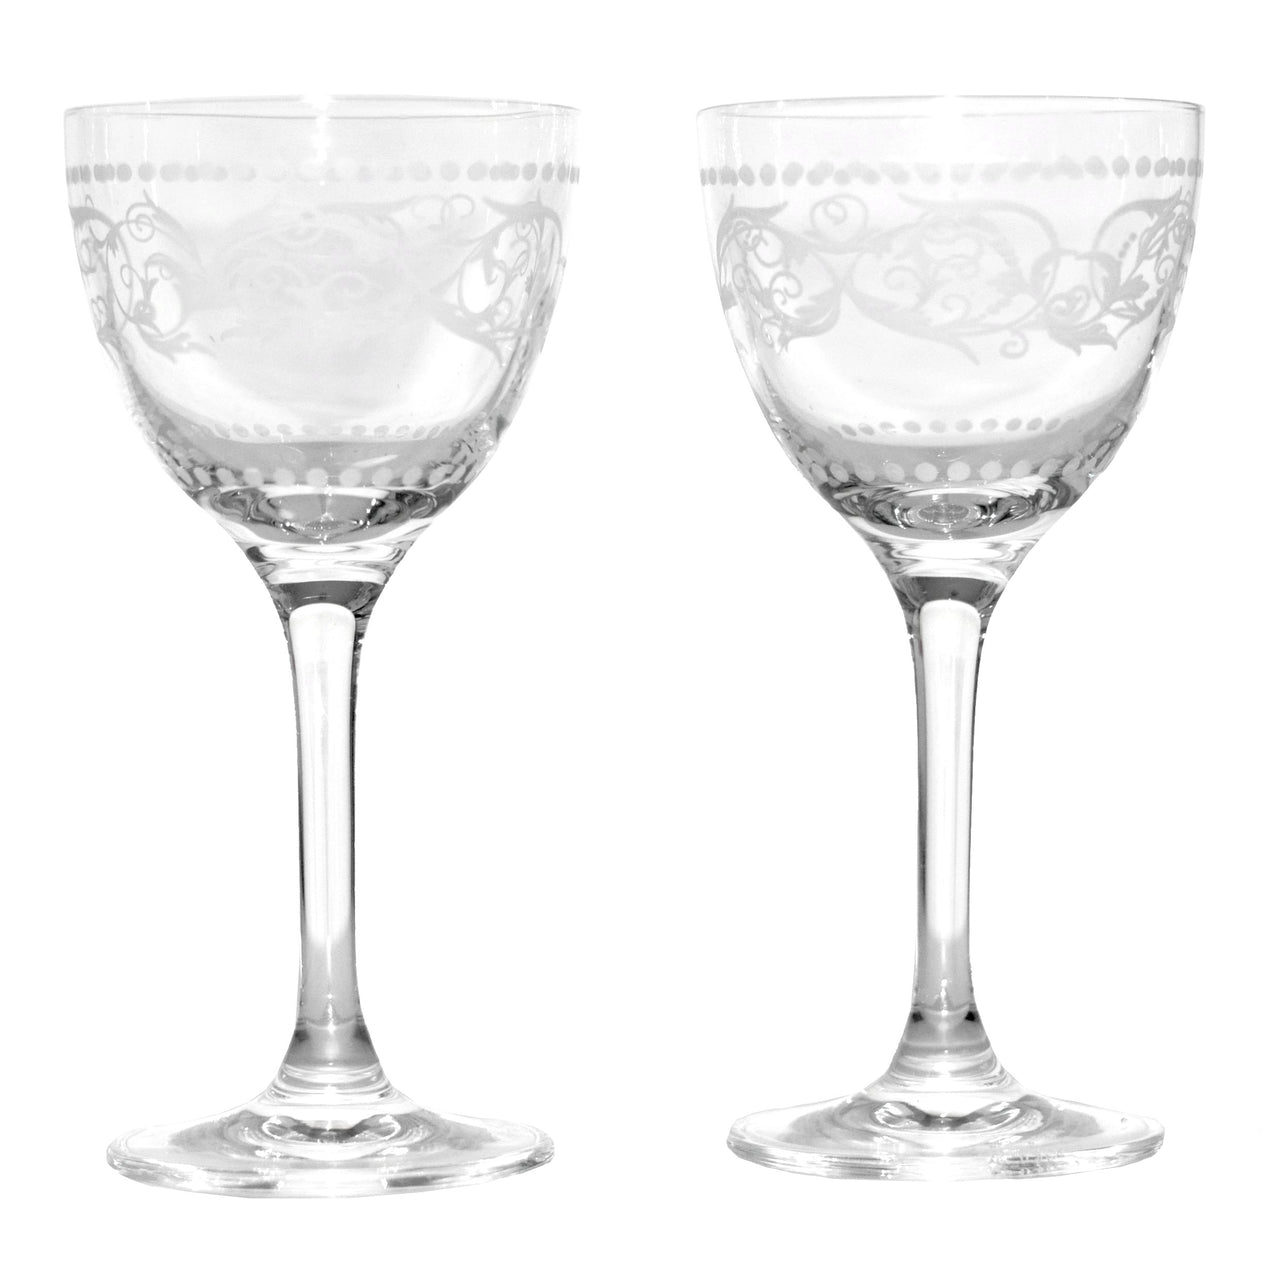 Rona Steelite Nick & Nora Cocktail Glasses, The Hour Shop